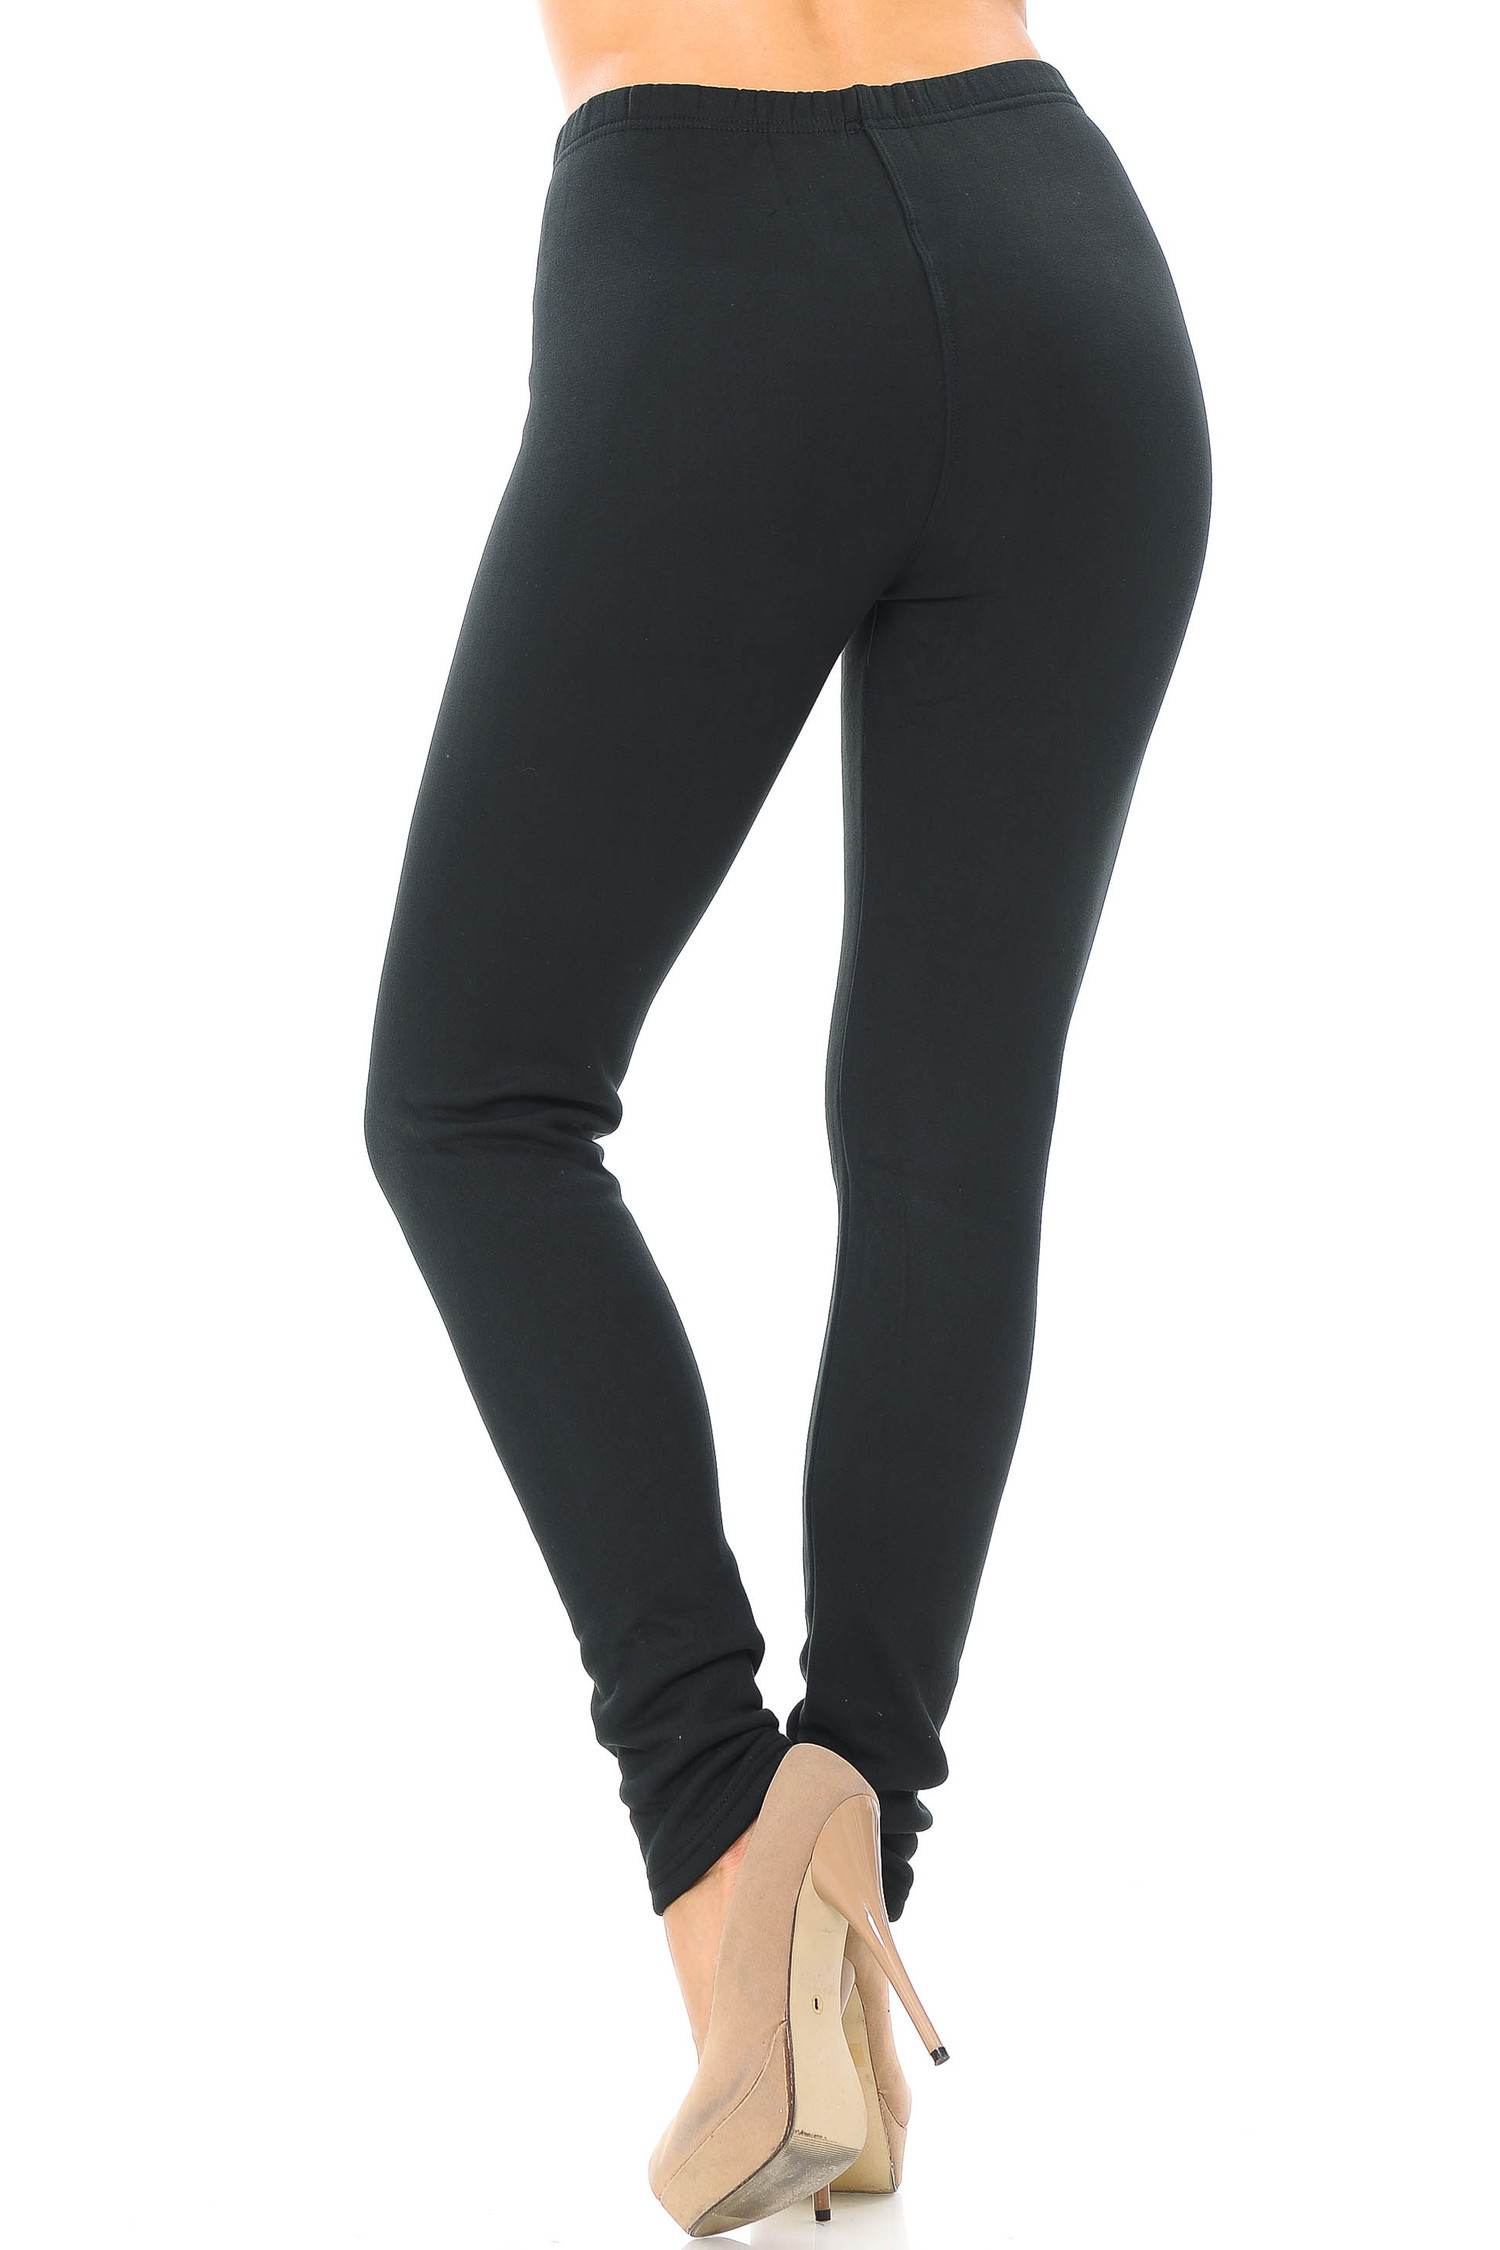 Back side image of Creamy Soft Fleece Lined Leggings - USA Fashion™